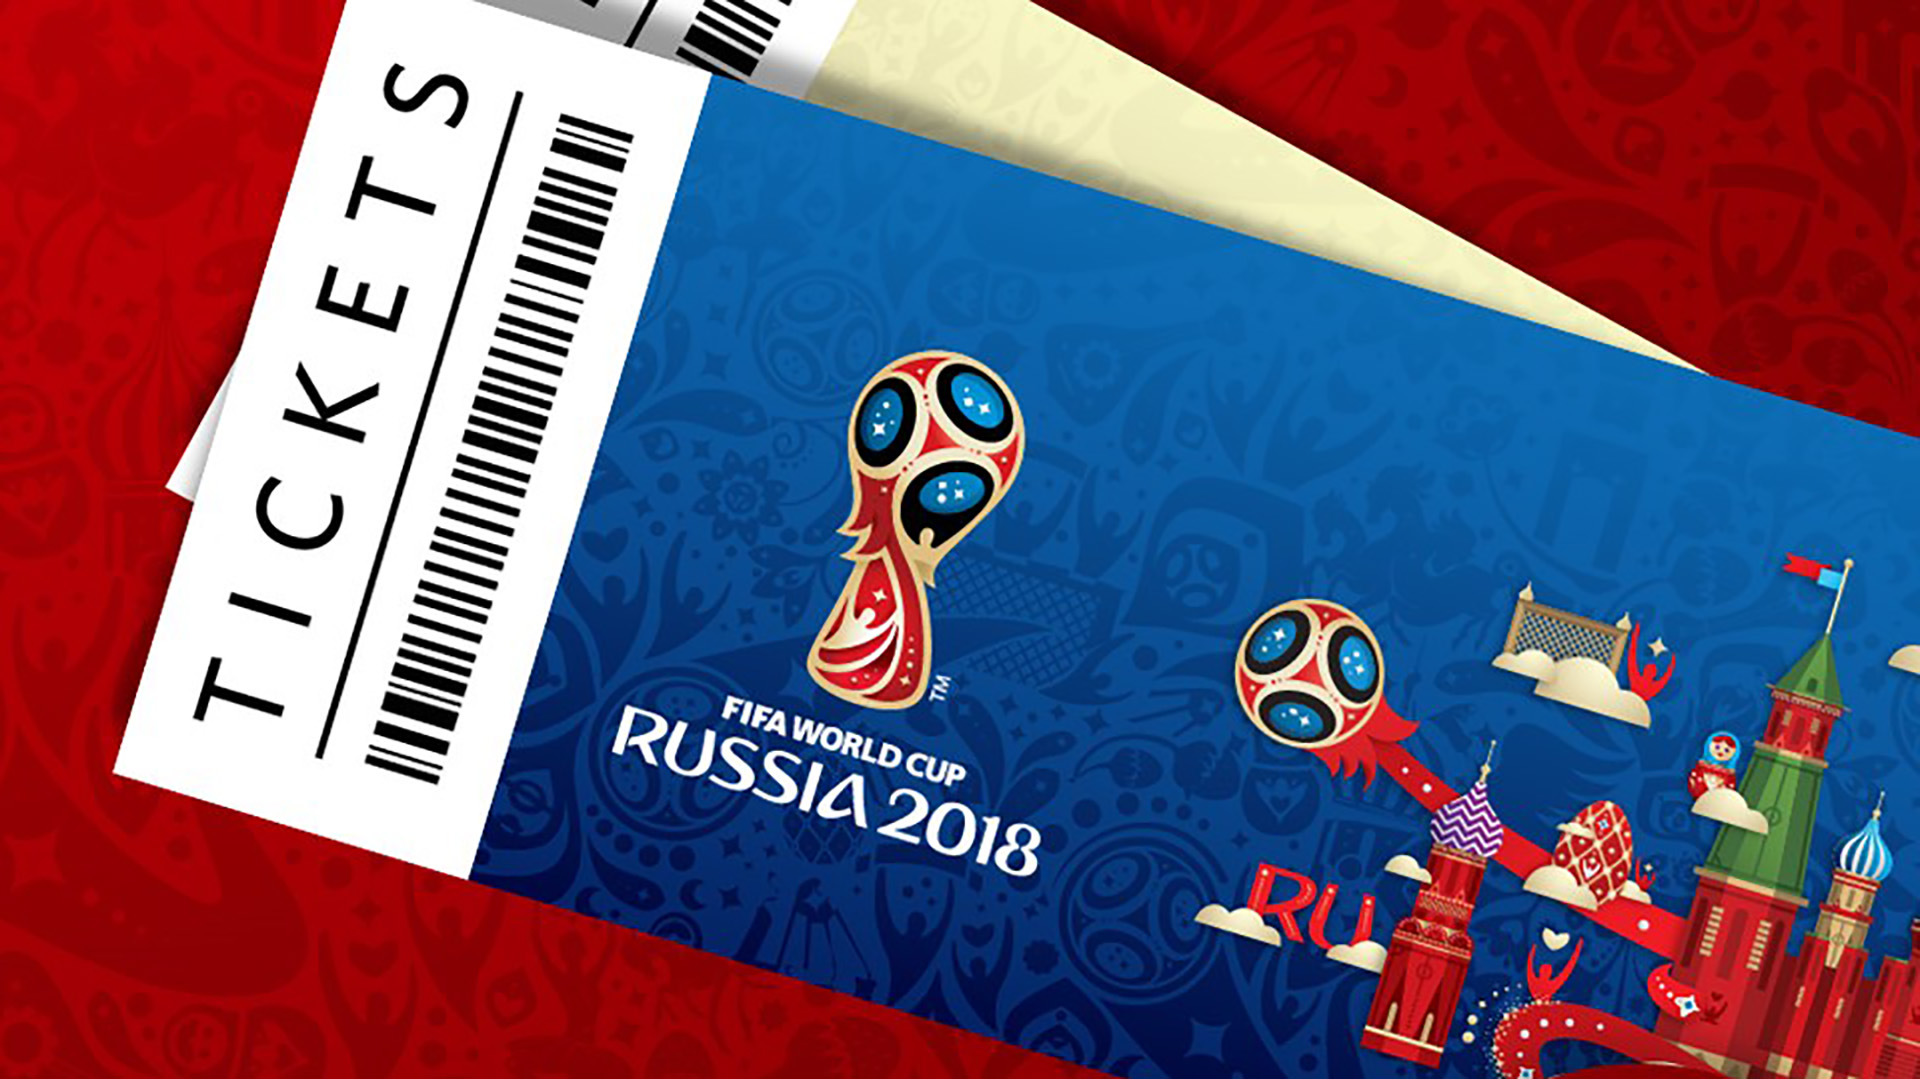 Tickets for the 2018 FIFA World Cup 15